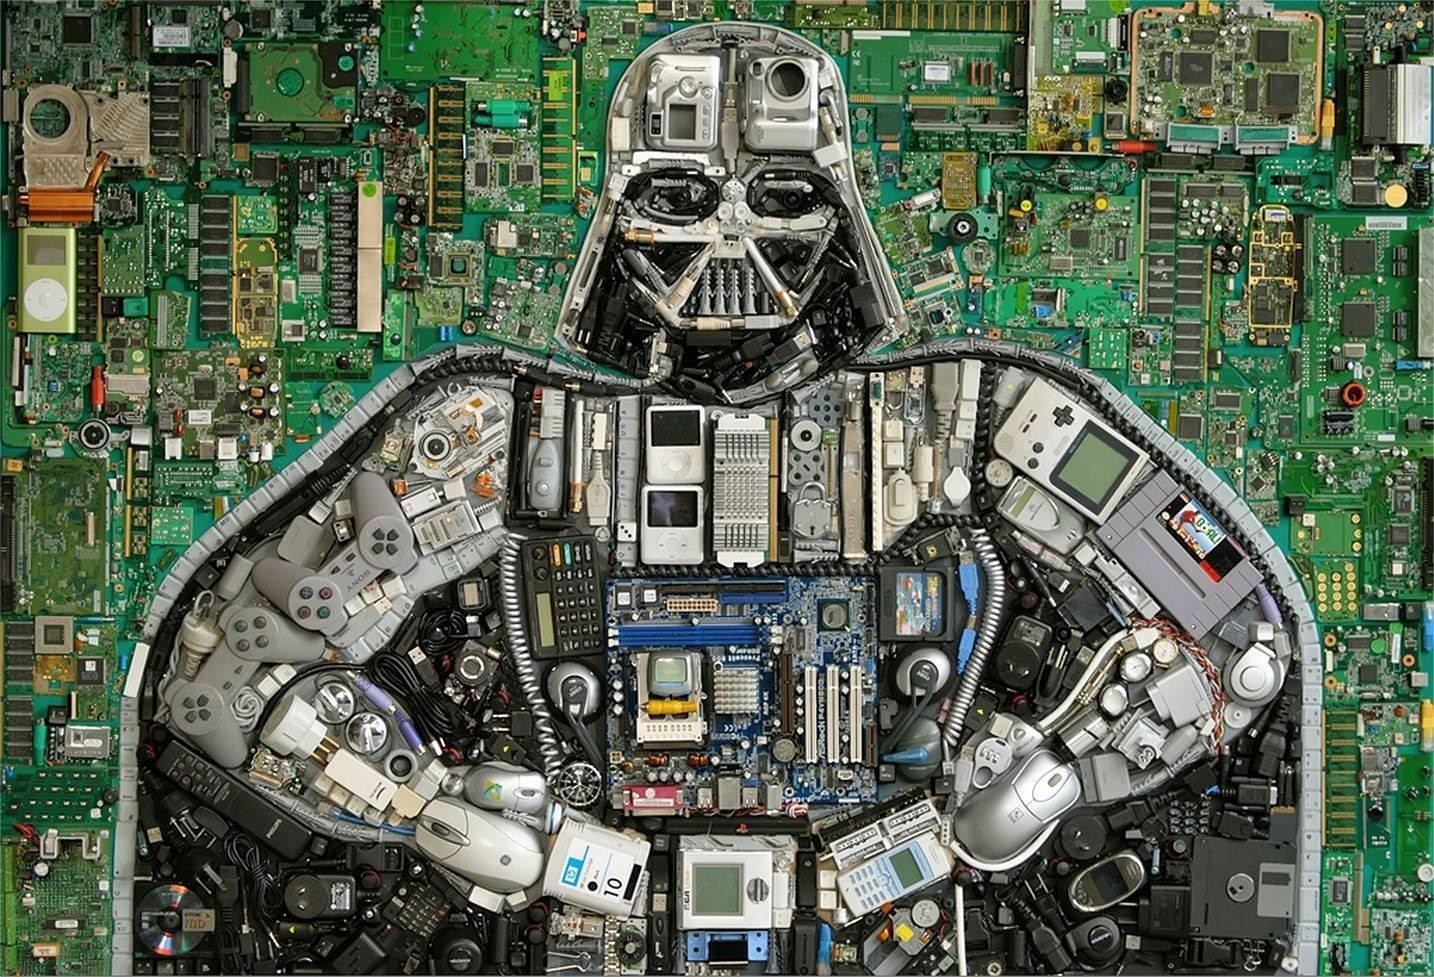 General 1434x977 Star Wars motherboards Darth Vader circuit boards hardware Nintendo controllers Ipod computer mice floppy disk PCB